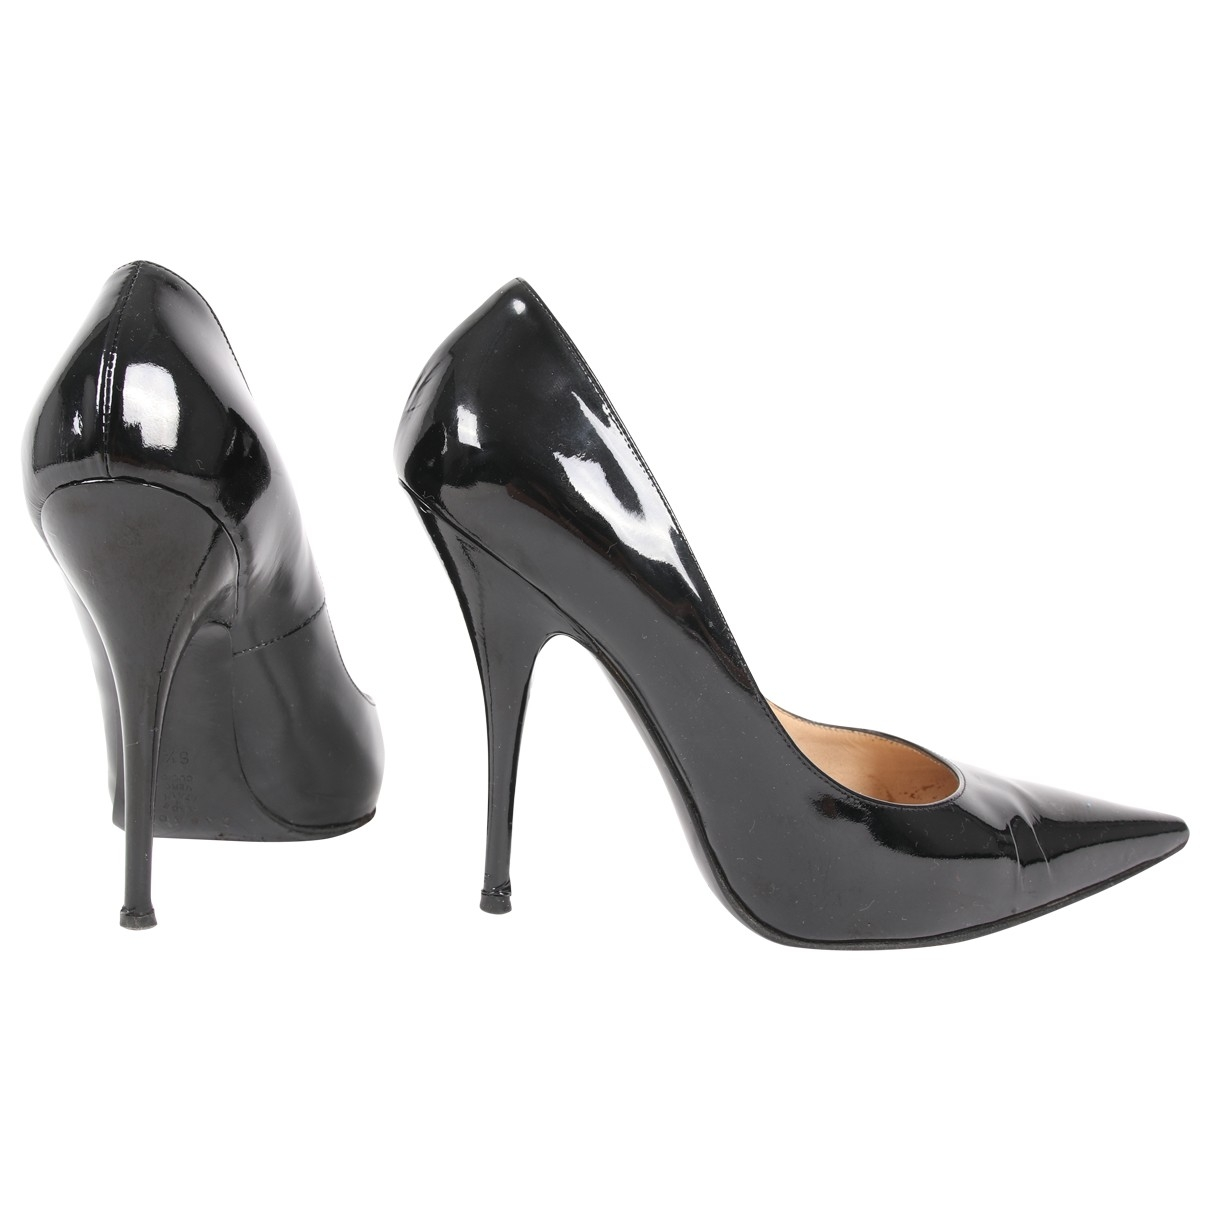 Casadei \N Black Patent leather Heels for Women 6.5 US